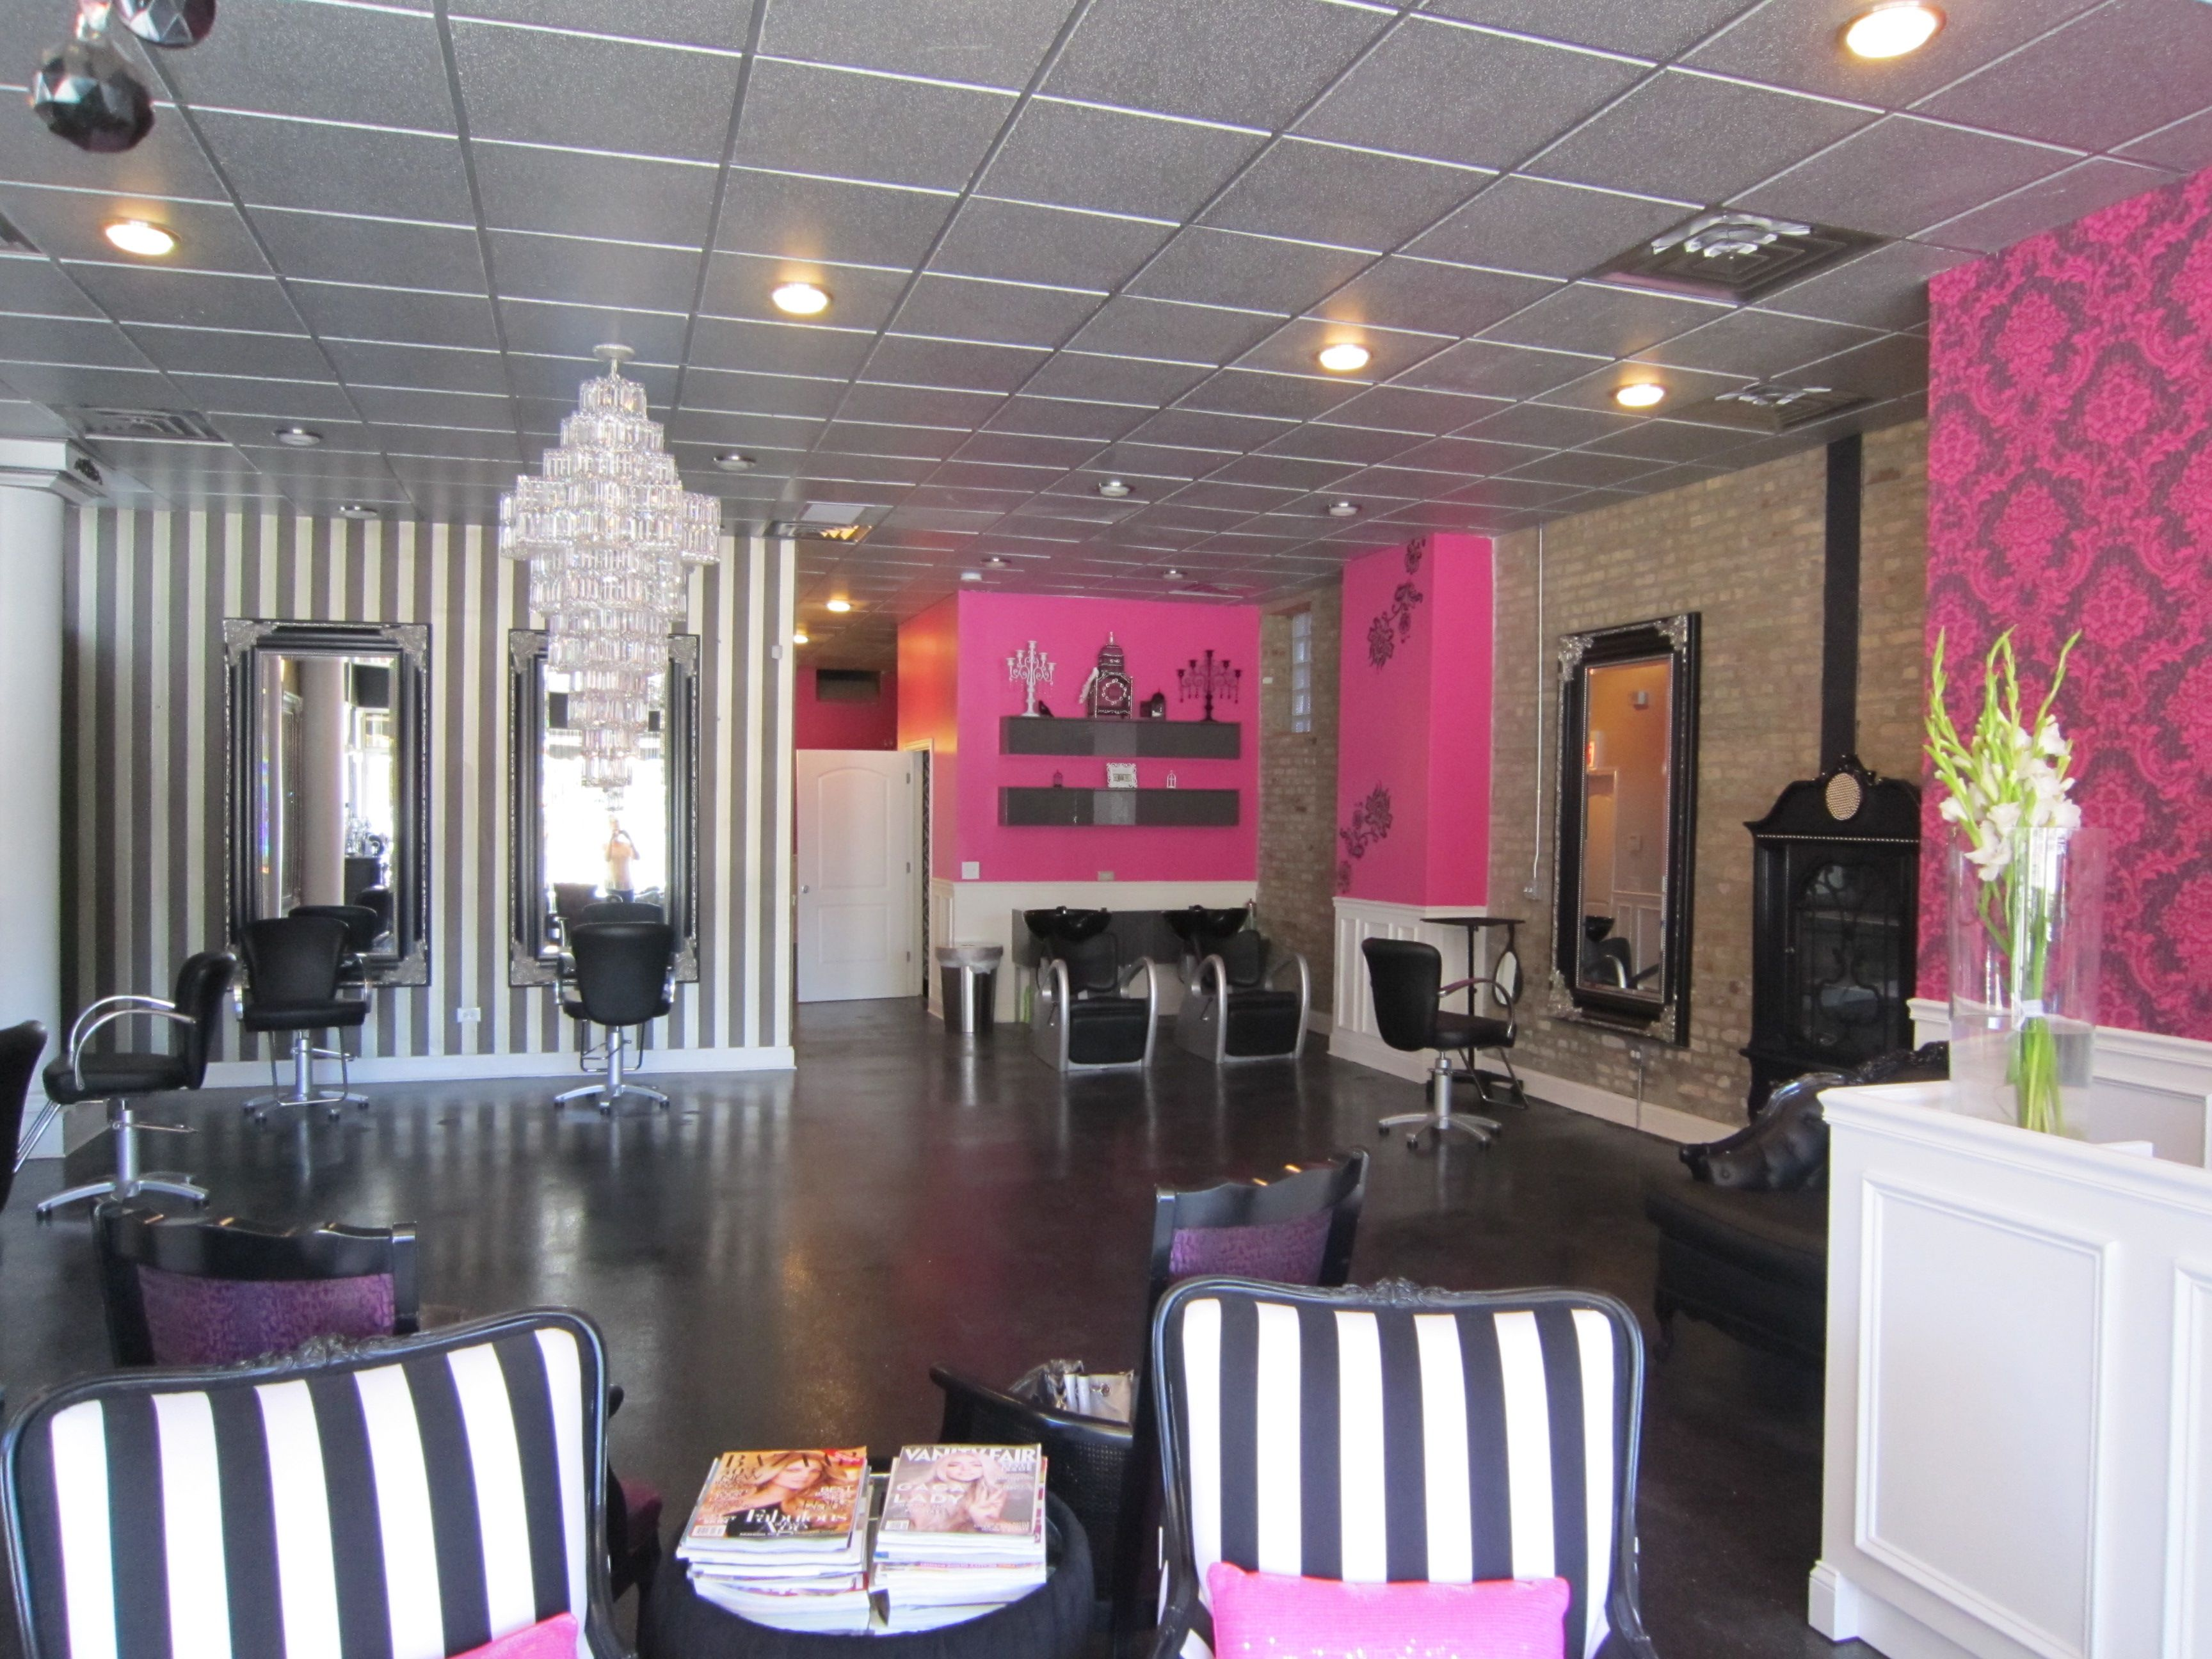 Pink Nail Salon Chairs 2 Seat Outdoor Table And Put Pedicure Chair Manicure Etc Behind That